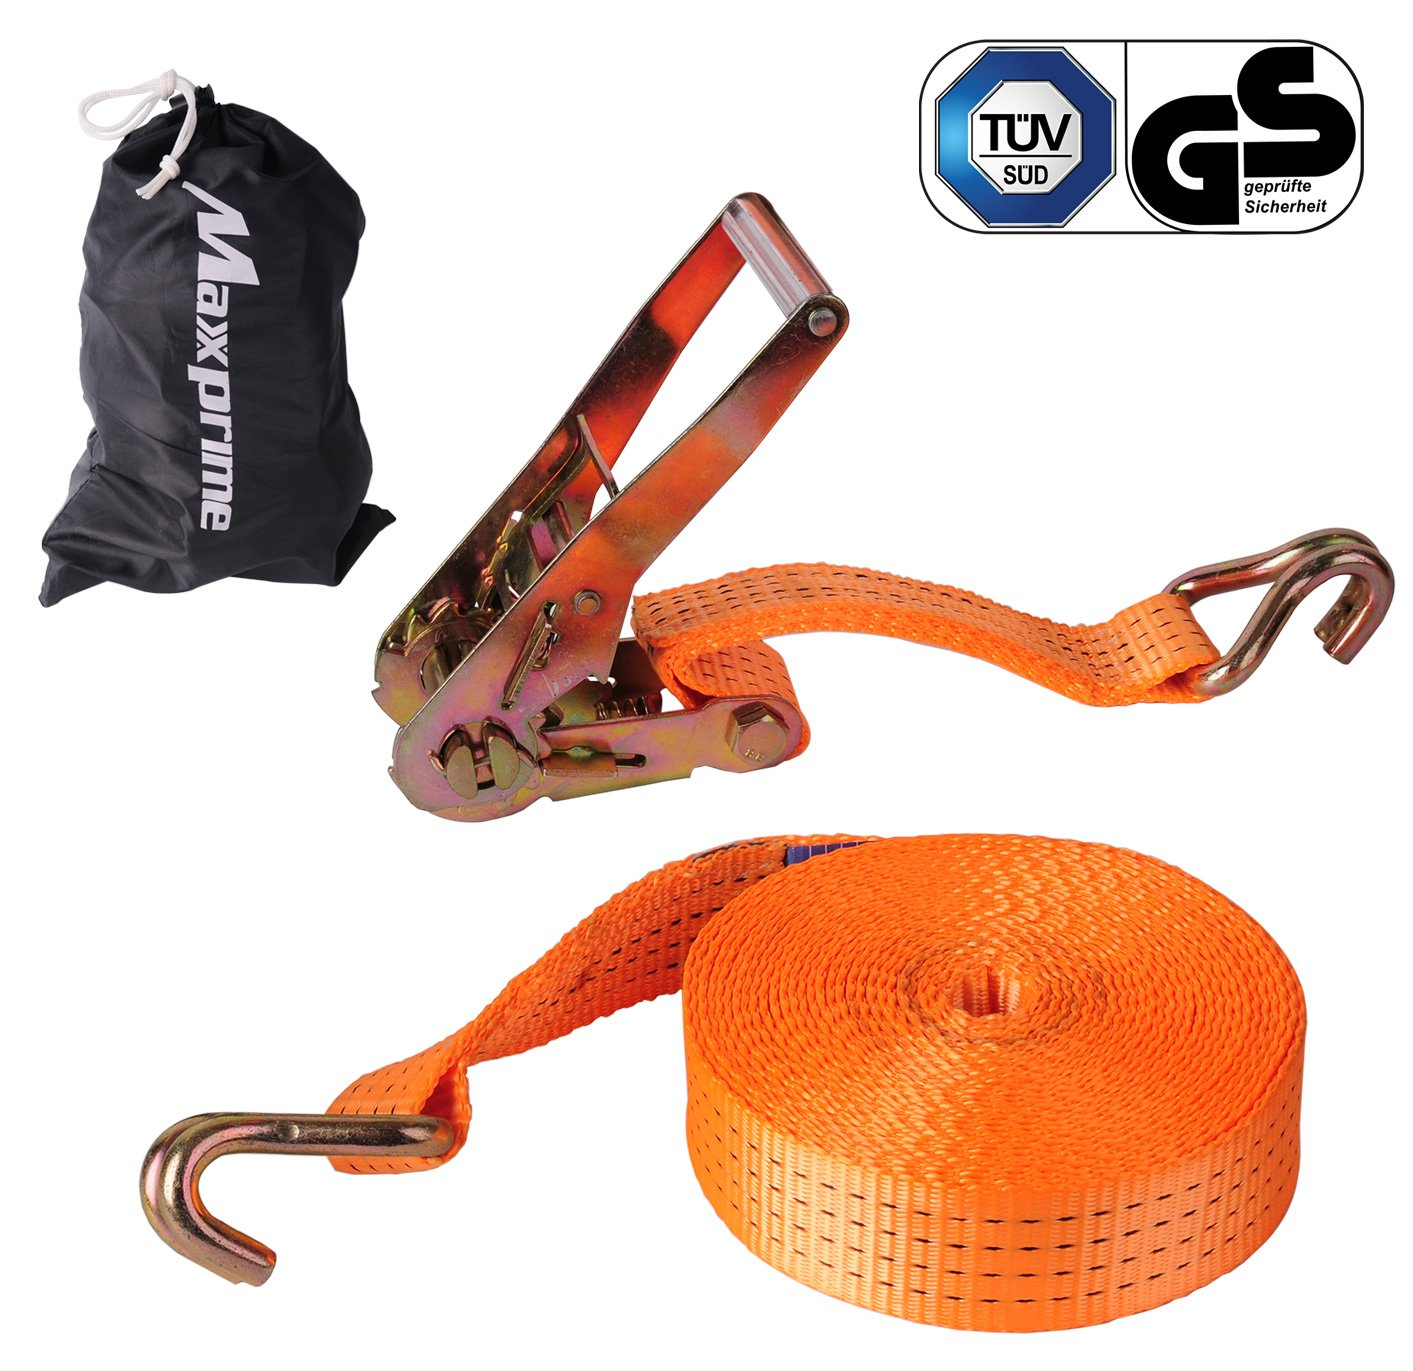 """Premium Ratchet Tie Down, Maxxprime 33' x 2"""" 10, 000 lbs Rated Capacity Tie-Down Ratcheting Cargo Truck Straps with Double J-Hooks - German Quality"""